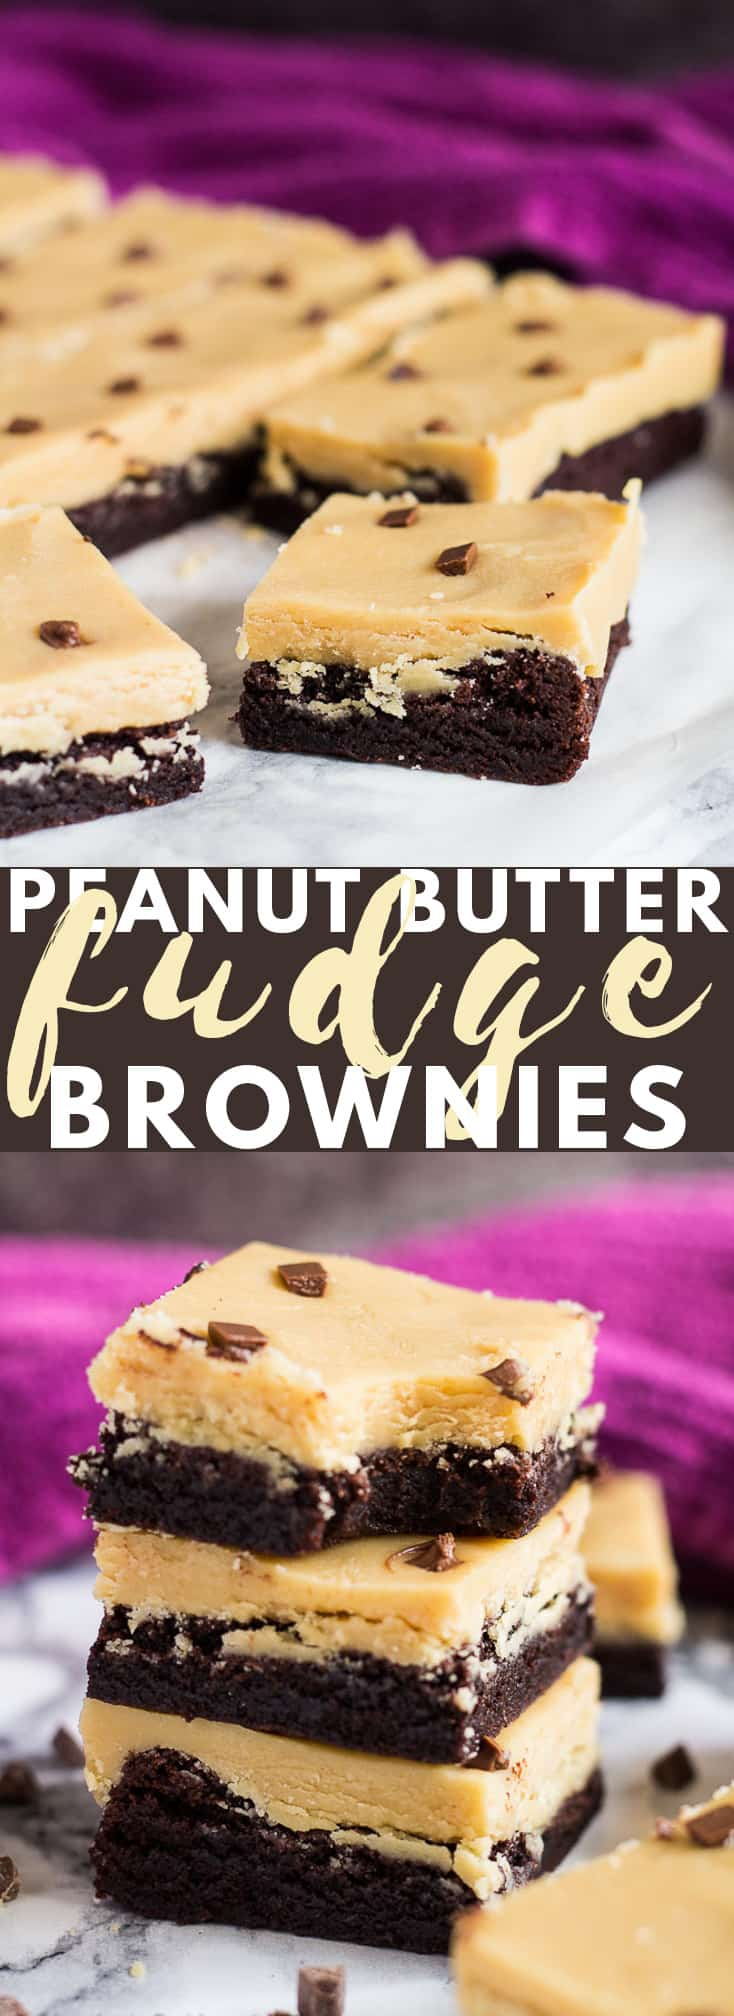 Peanut Butter Fudge Brownies - Deliciously thick and chewy rich chocolate brownies that are topped with a thick layer of creamy peanut butter fudge!